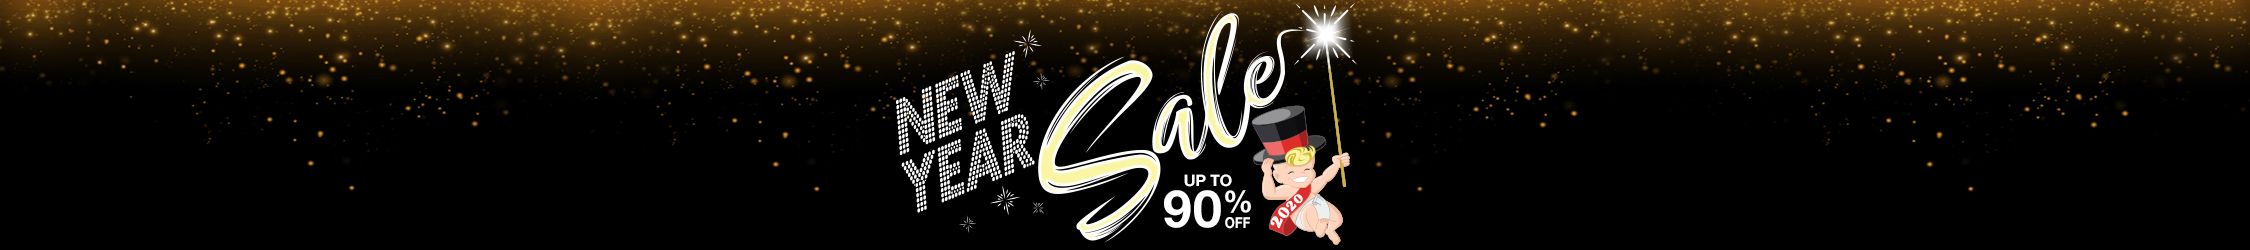 New Year Sale 2019 Up to 90% Off!